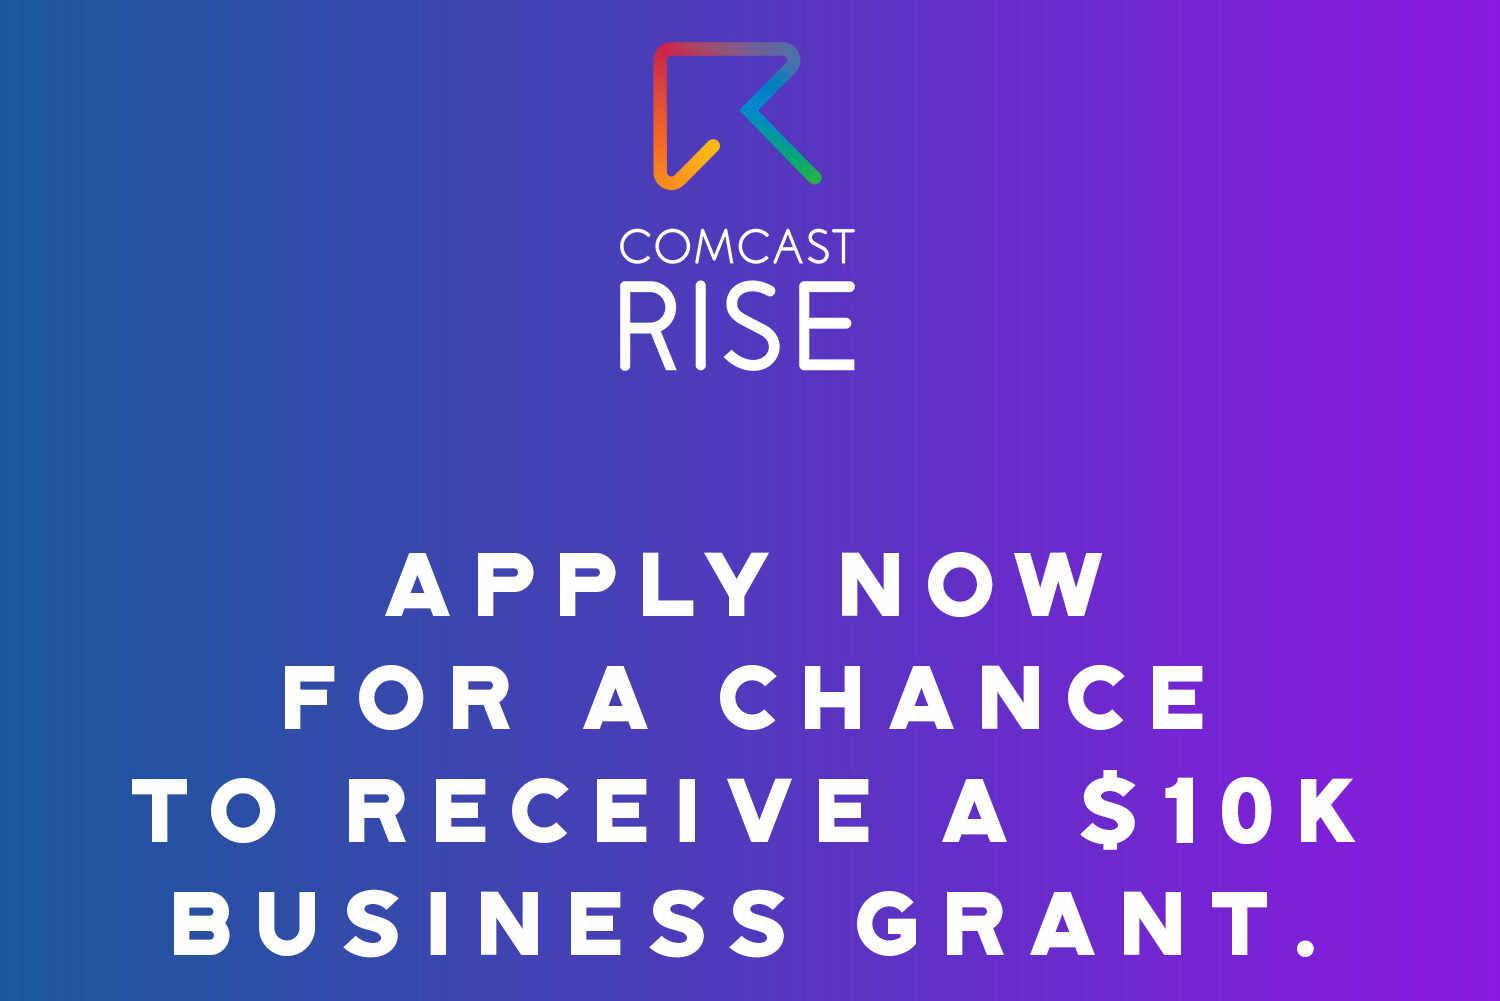 A blue background, written is: apply now for a chance to receive a 10K business grant.